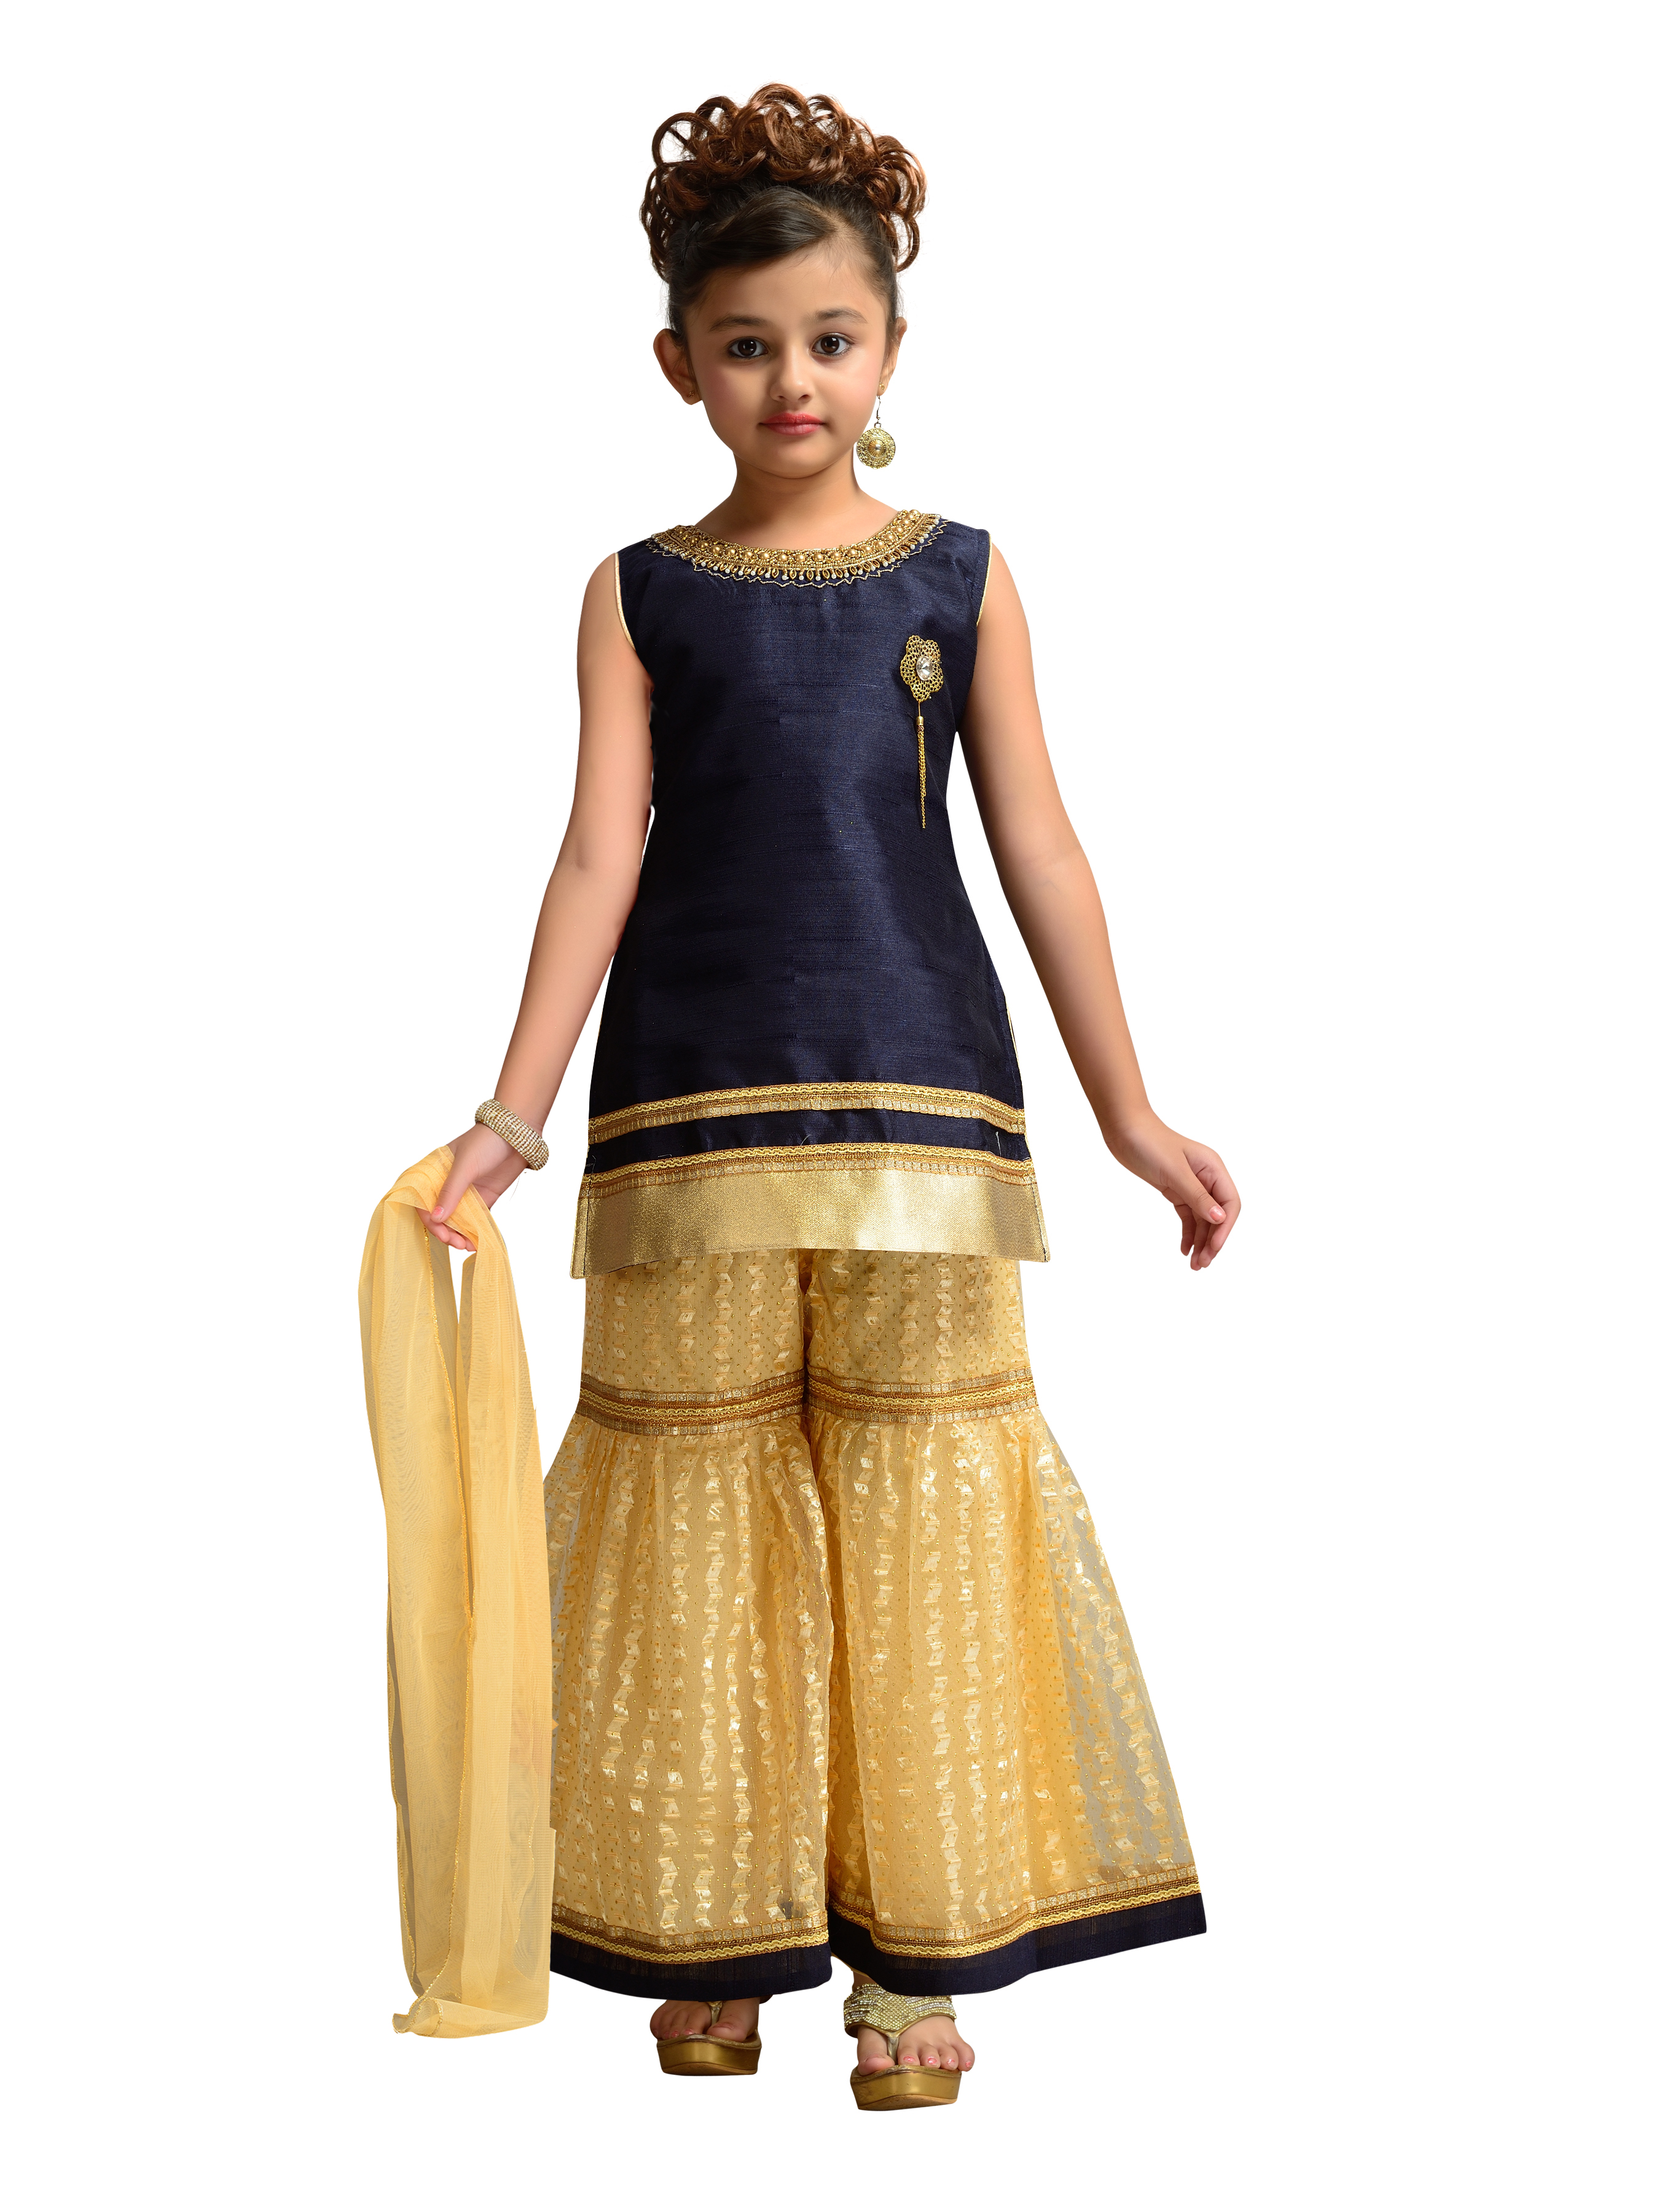 1e3d8c0c1e8f1 Girls Clothing - Buy Latest Girls Clothes Online at Low Prices